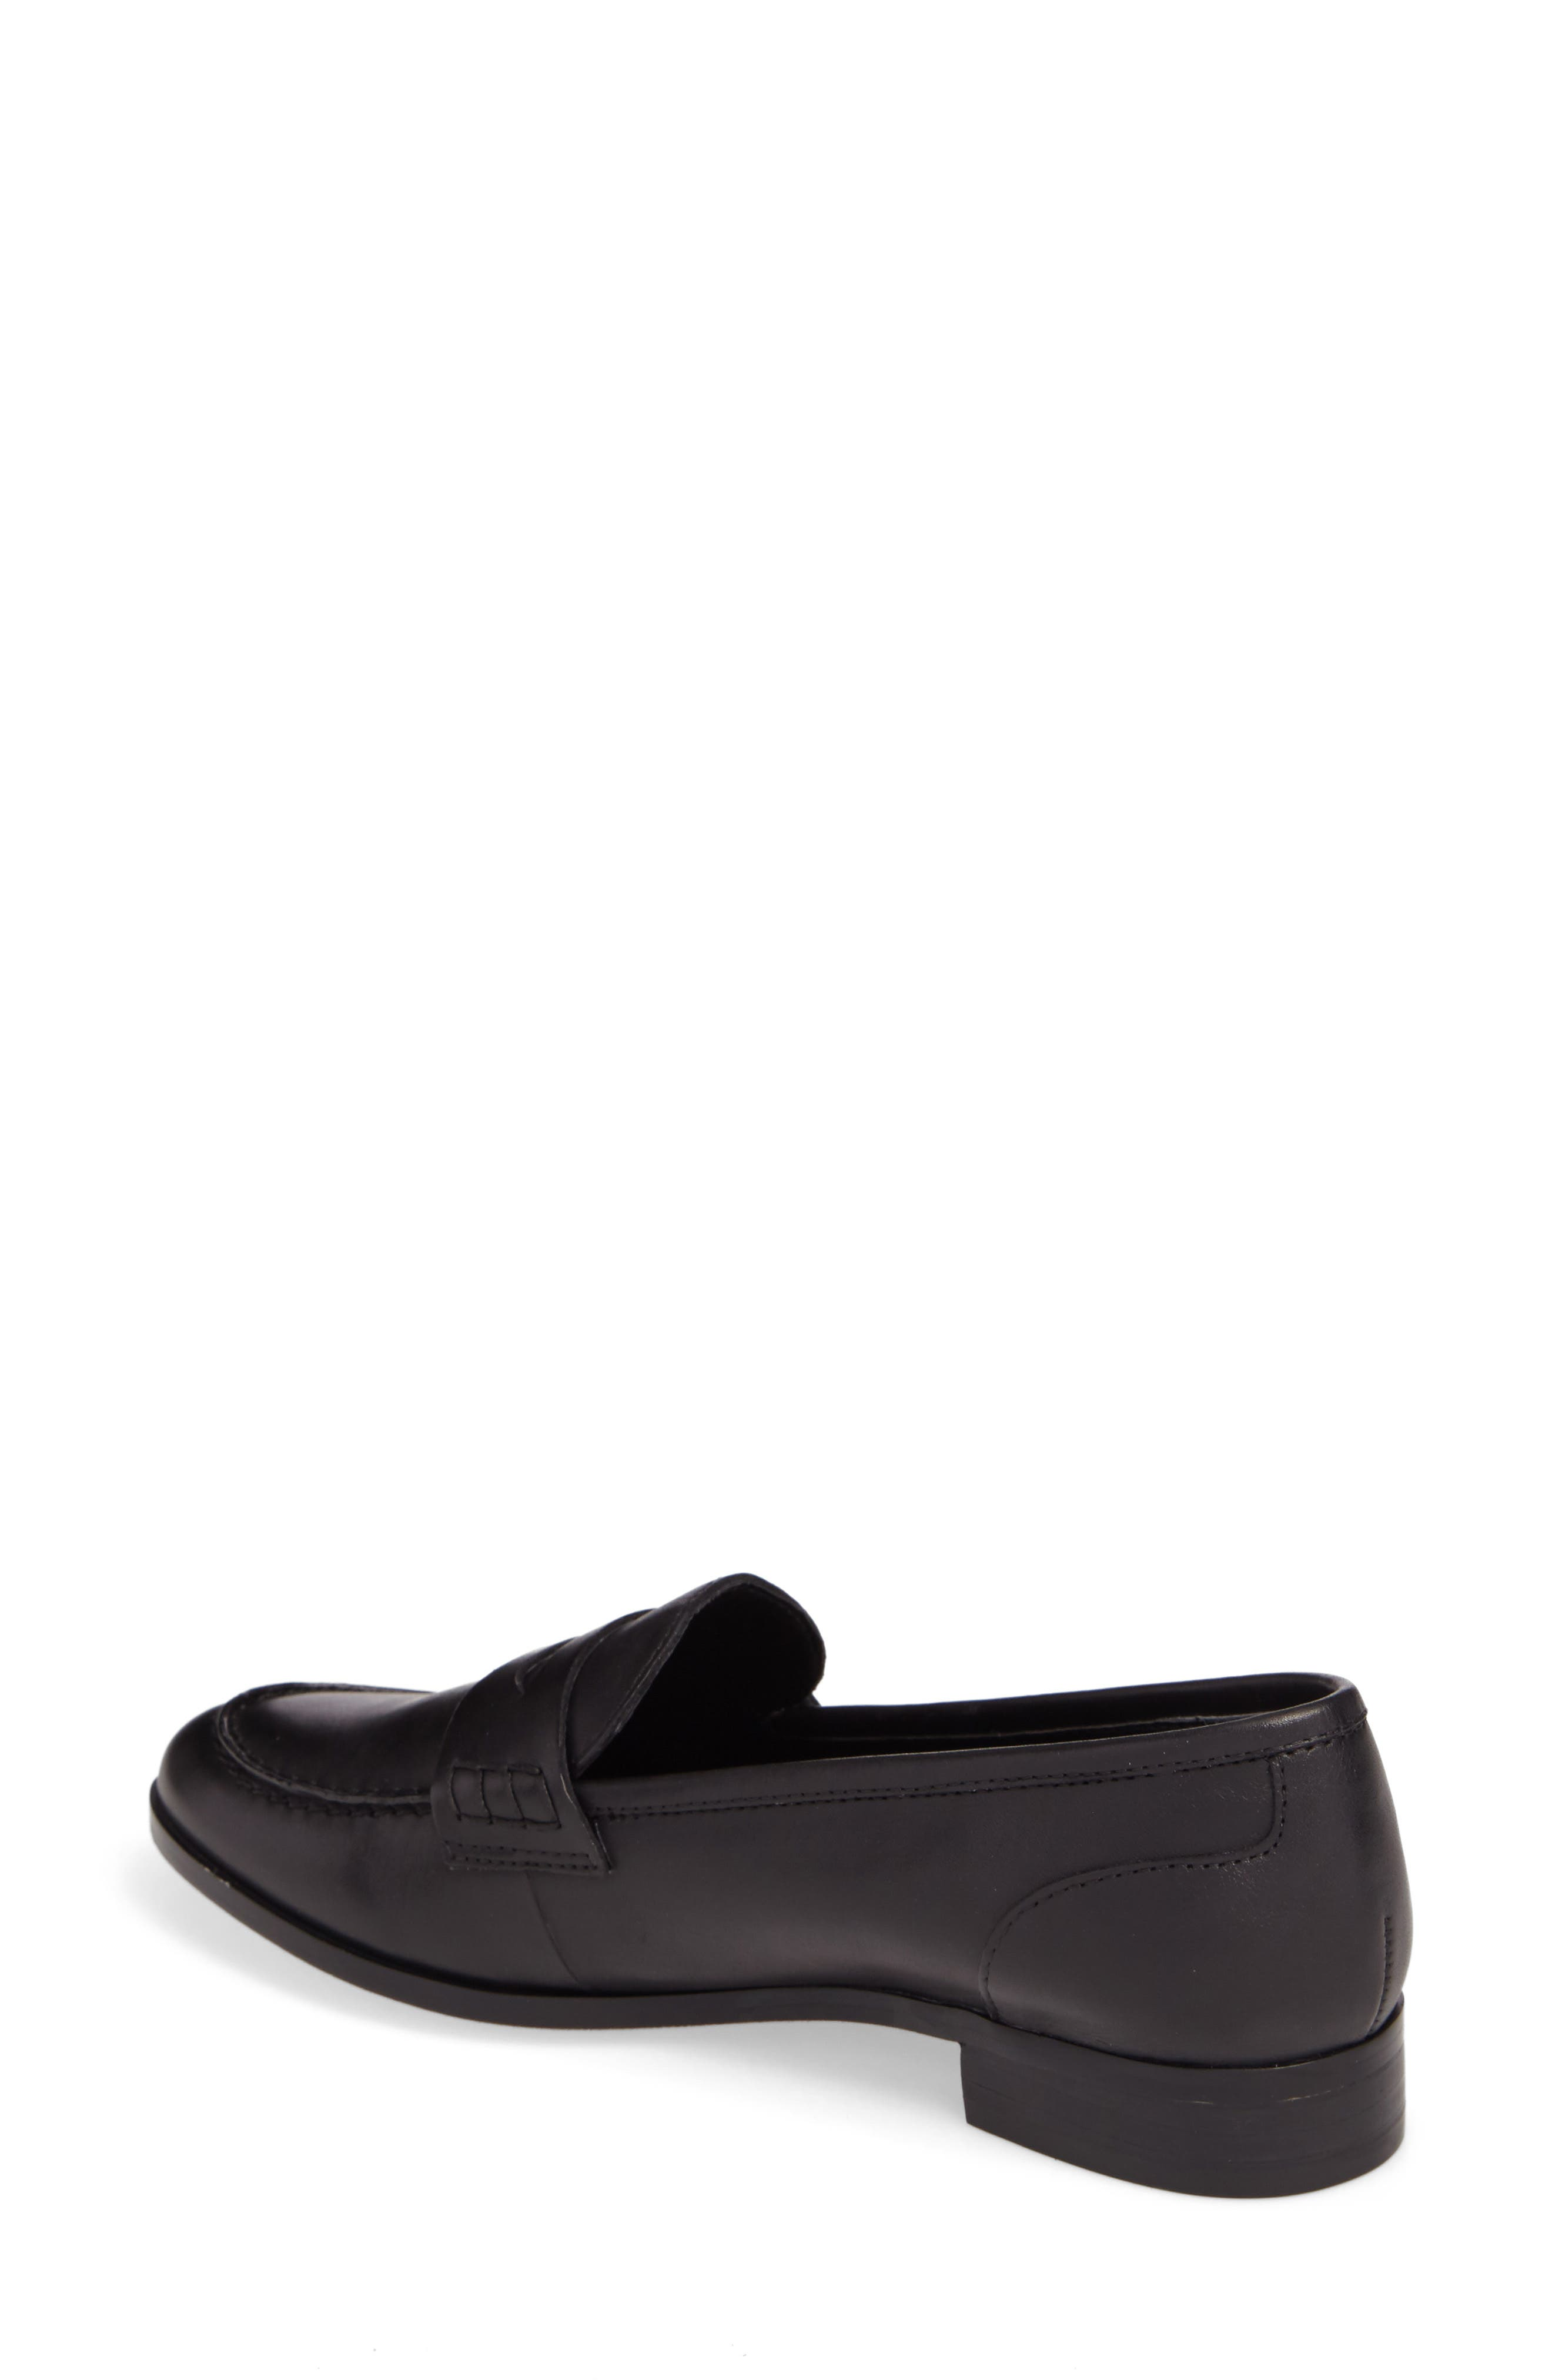 Georgie Penny Loafer,                             Alternate thumbnail 2, color,                             Black Leather